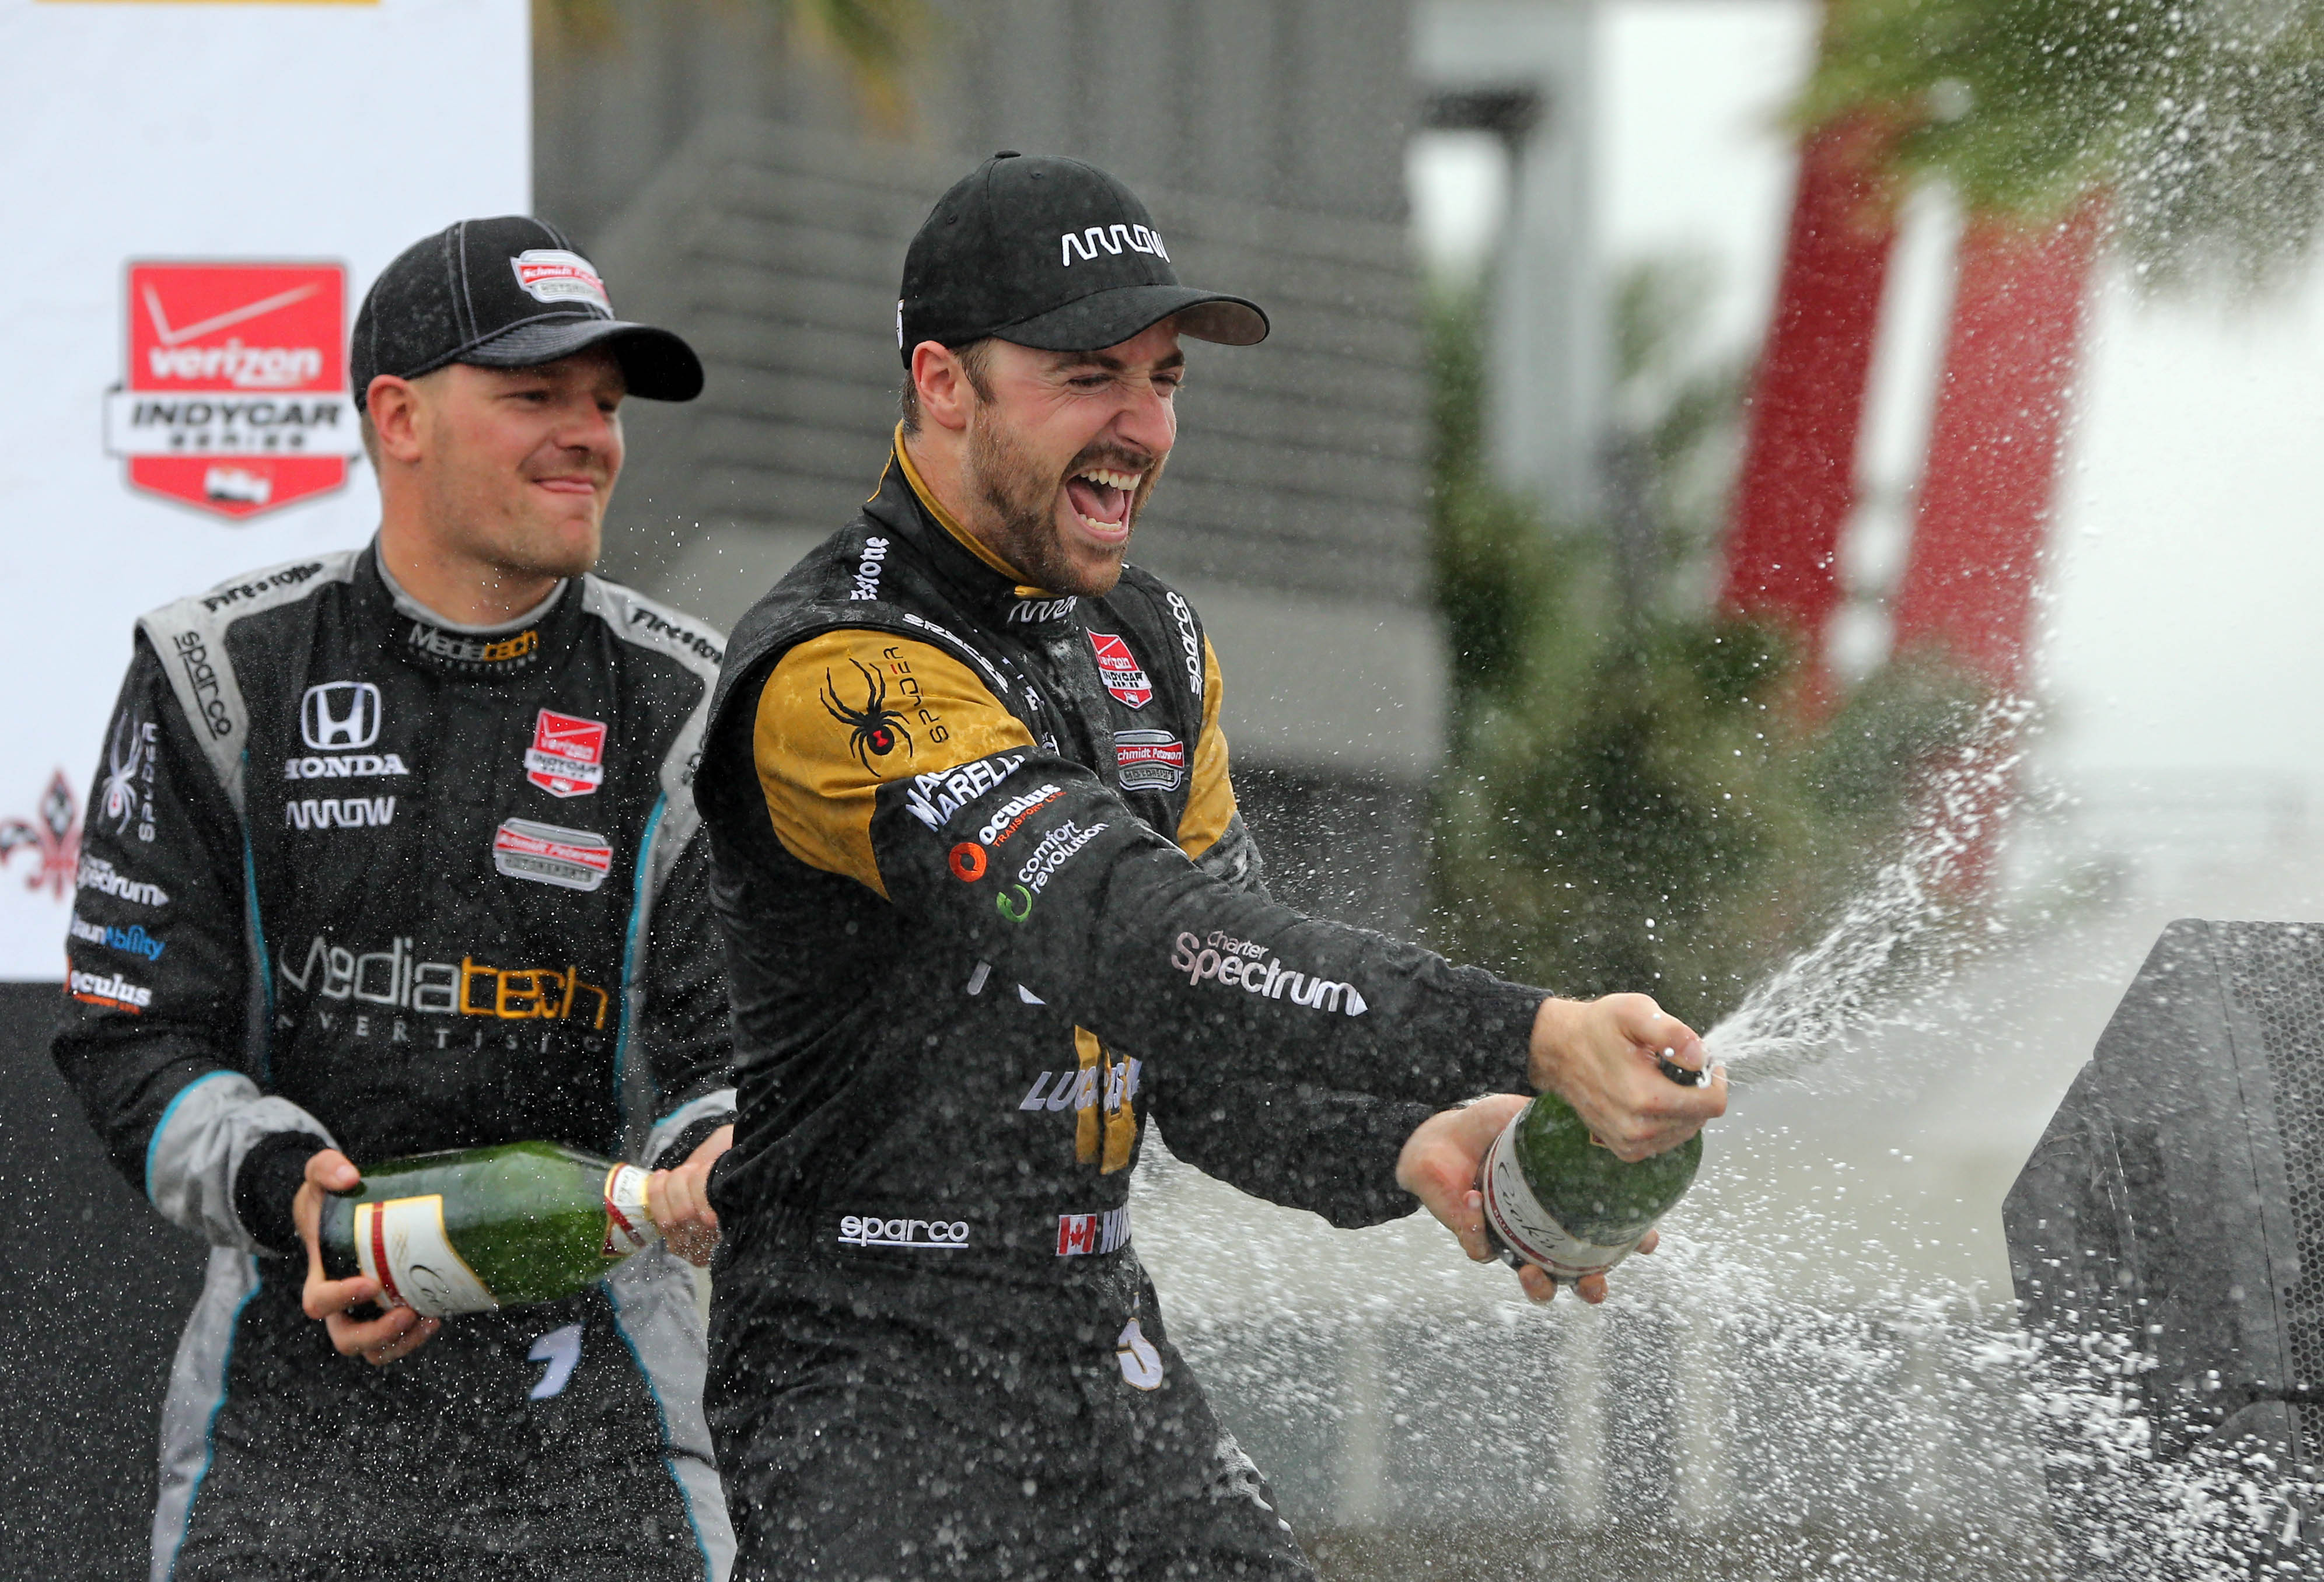 James Hinchcliffe, right, celebrates with third-place finisher James Jakes after winning at the Grand Prix of Louisiana on April 12. (Chuck Cook, USA TODAY Sports)